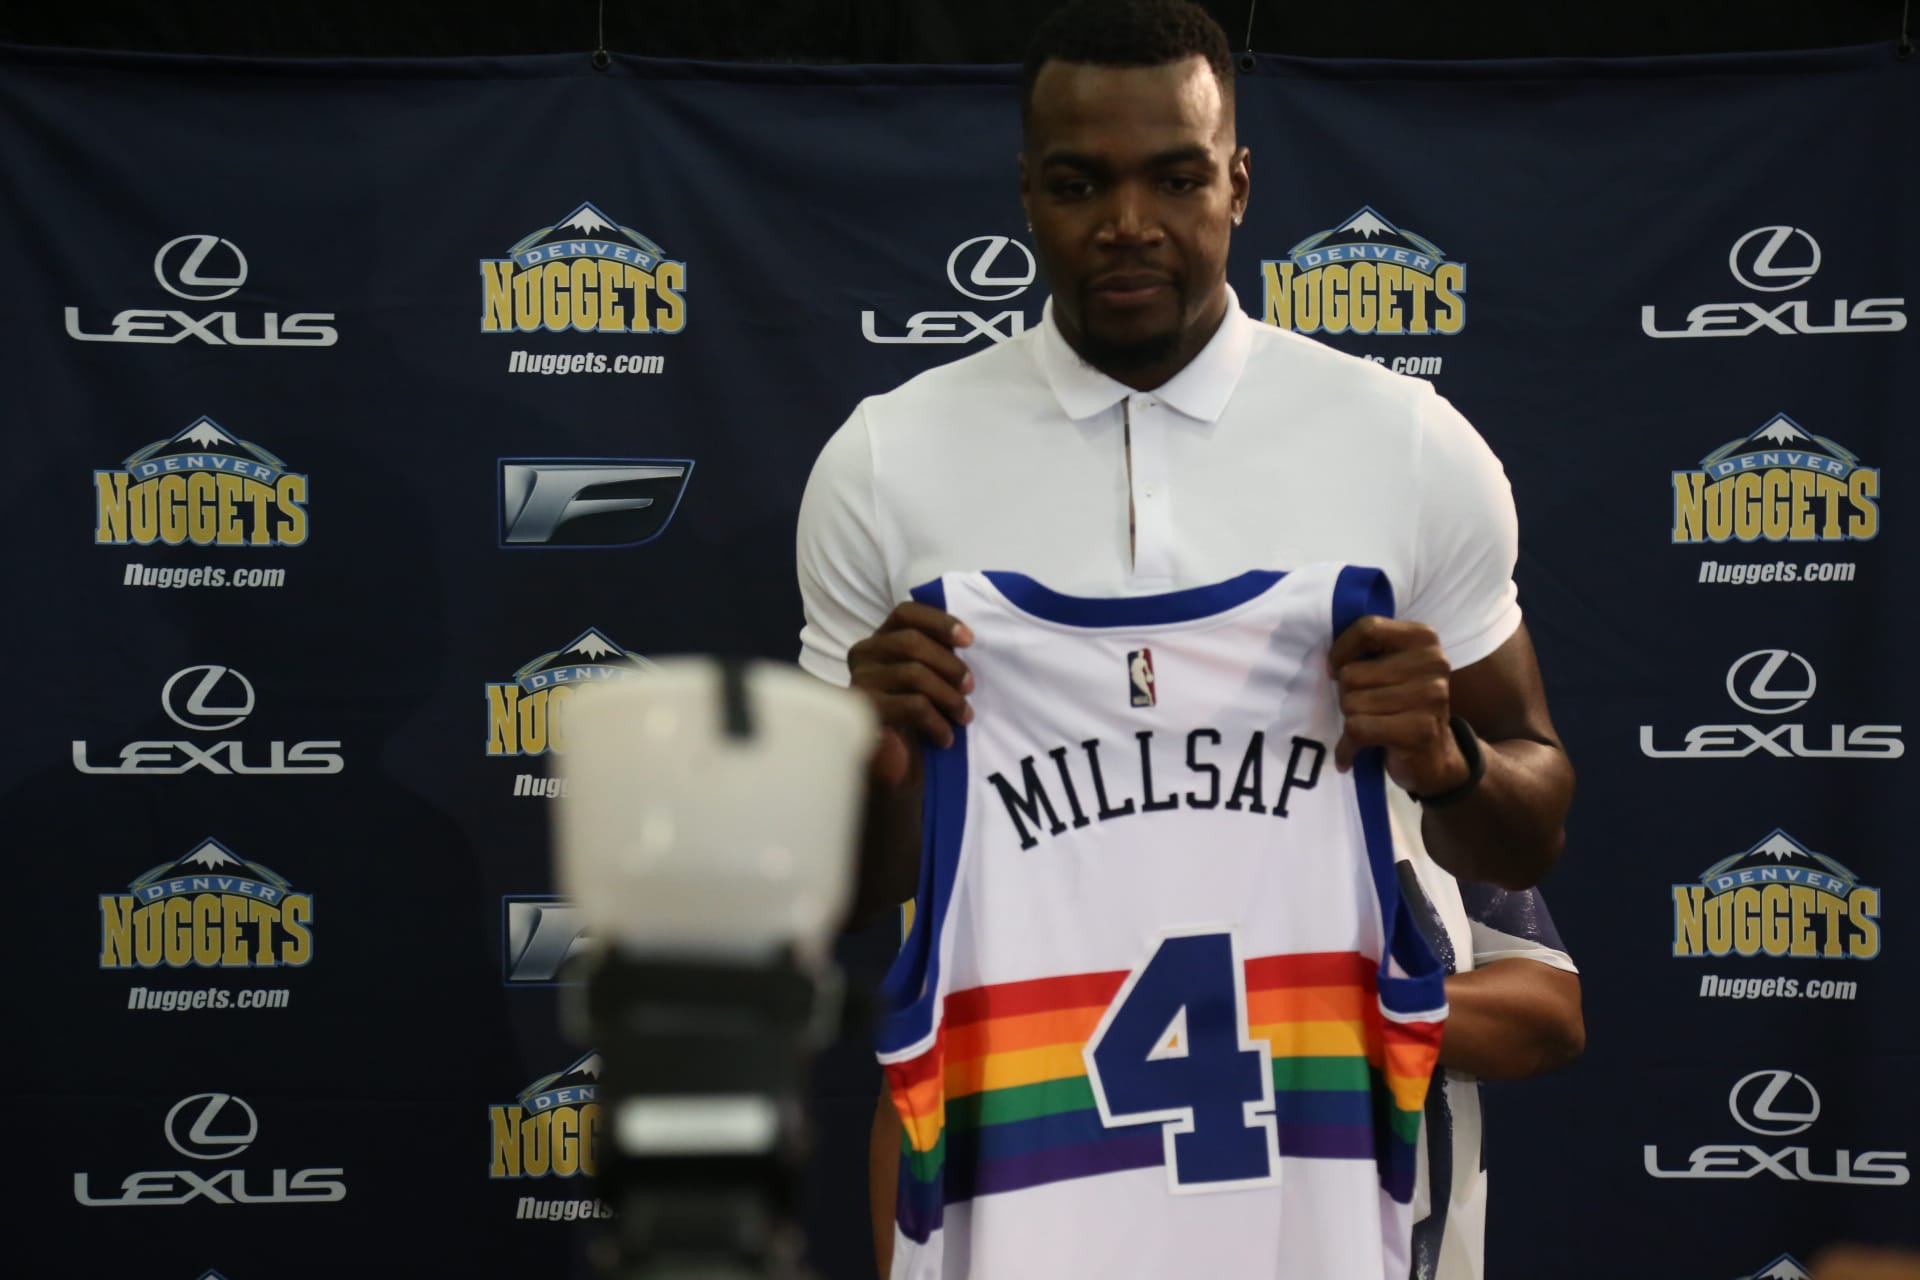 separation shoes 43097 3da84 Photo Gallery: Welcoming Paul Millsap | Denver Nuggets